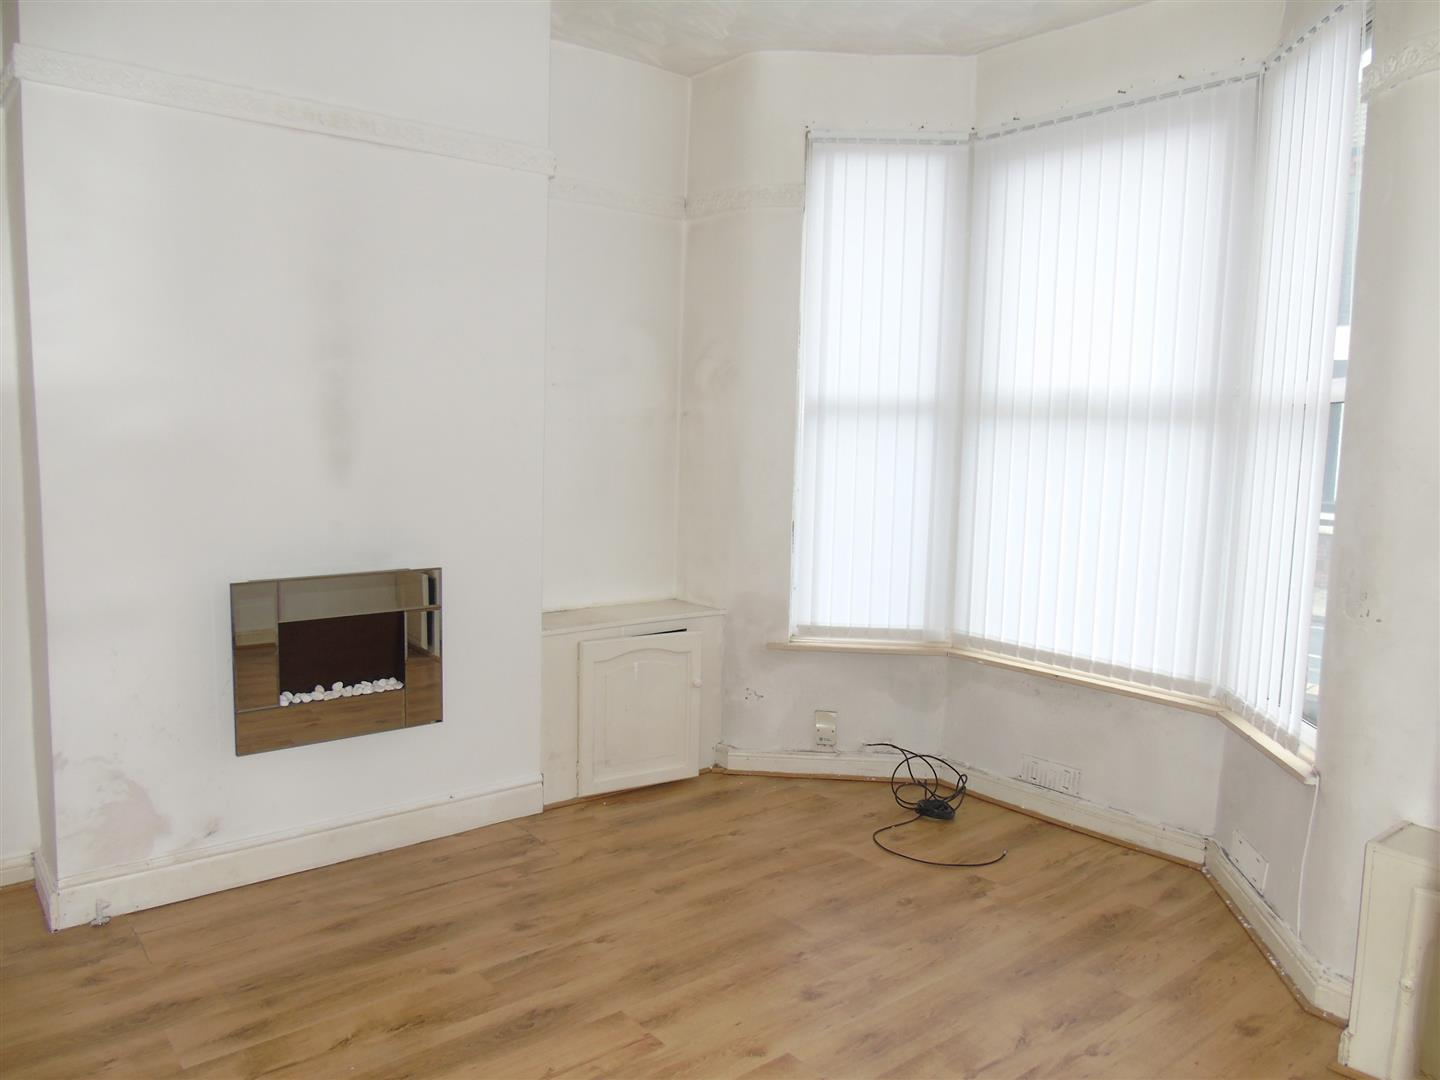 3 Bedrooms, House - Mid Terrace, Dunluce Street, Liverpool